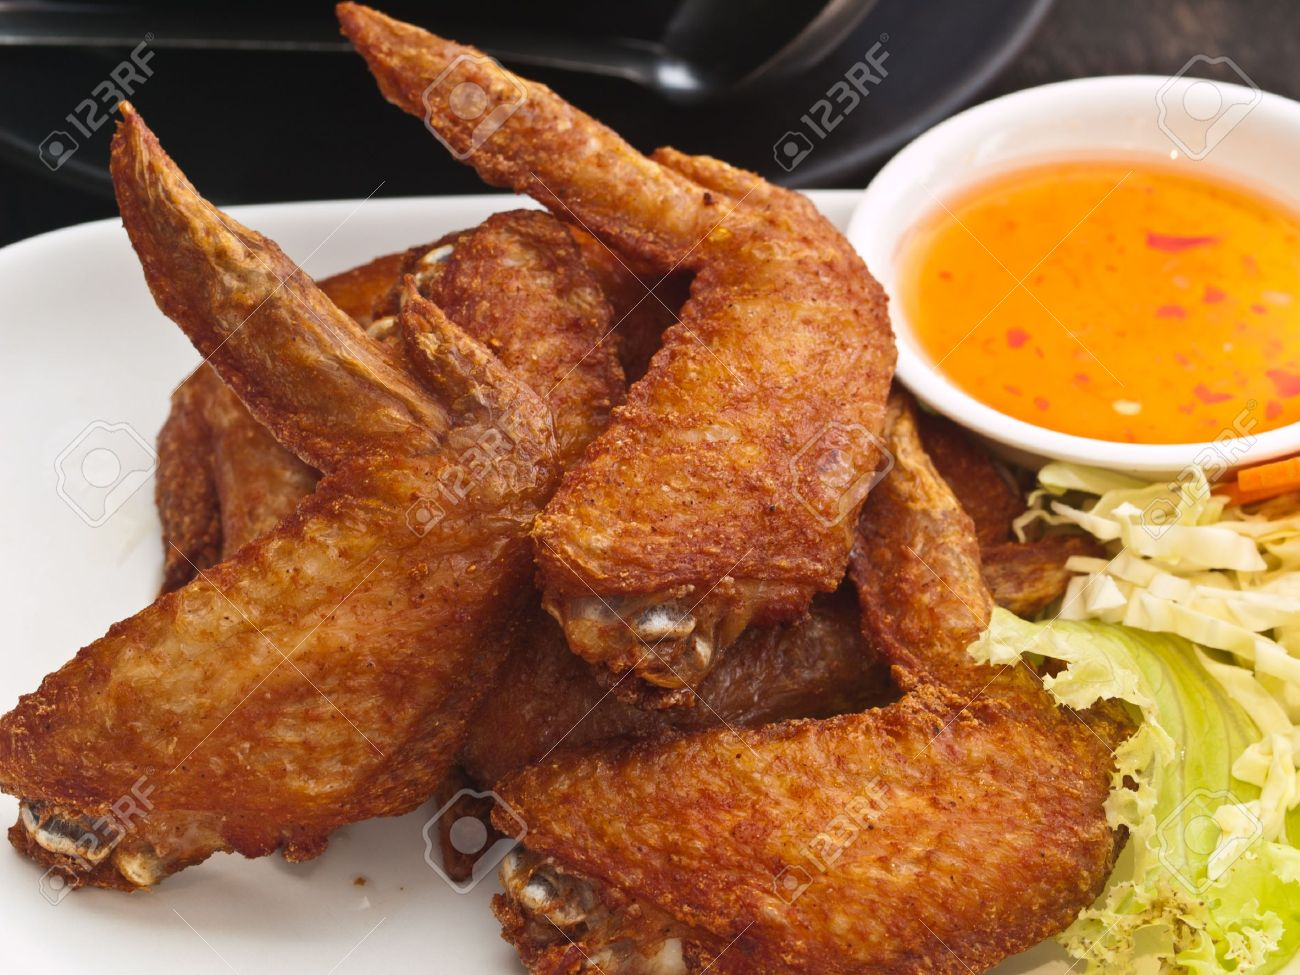 9213591-Fried-Chicken-wing-on-plate-Stoc